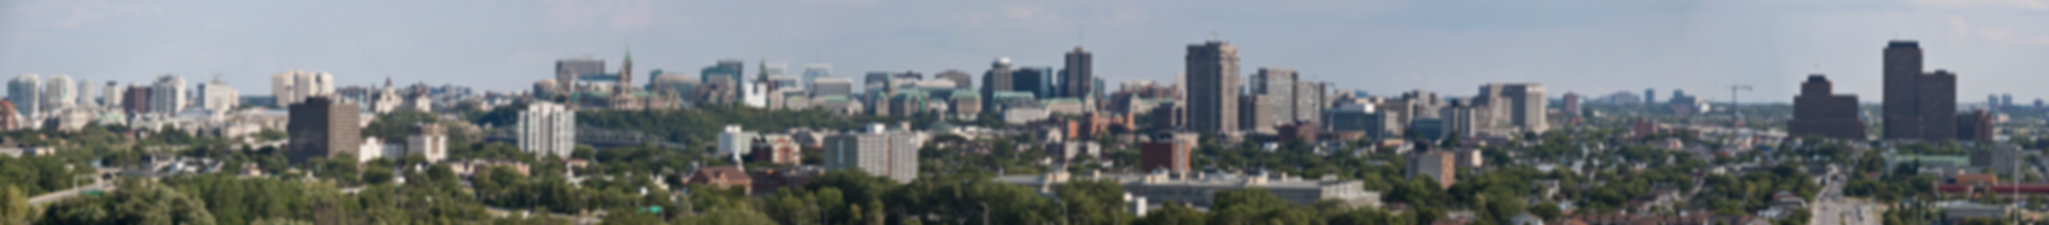 City of Ottawa Skyline